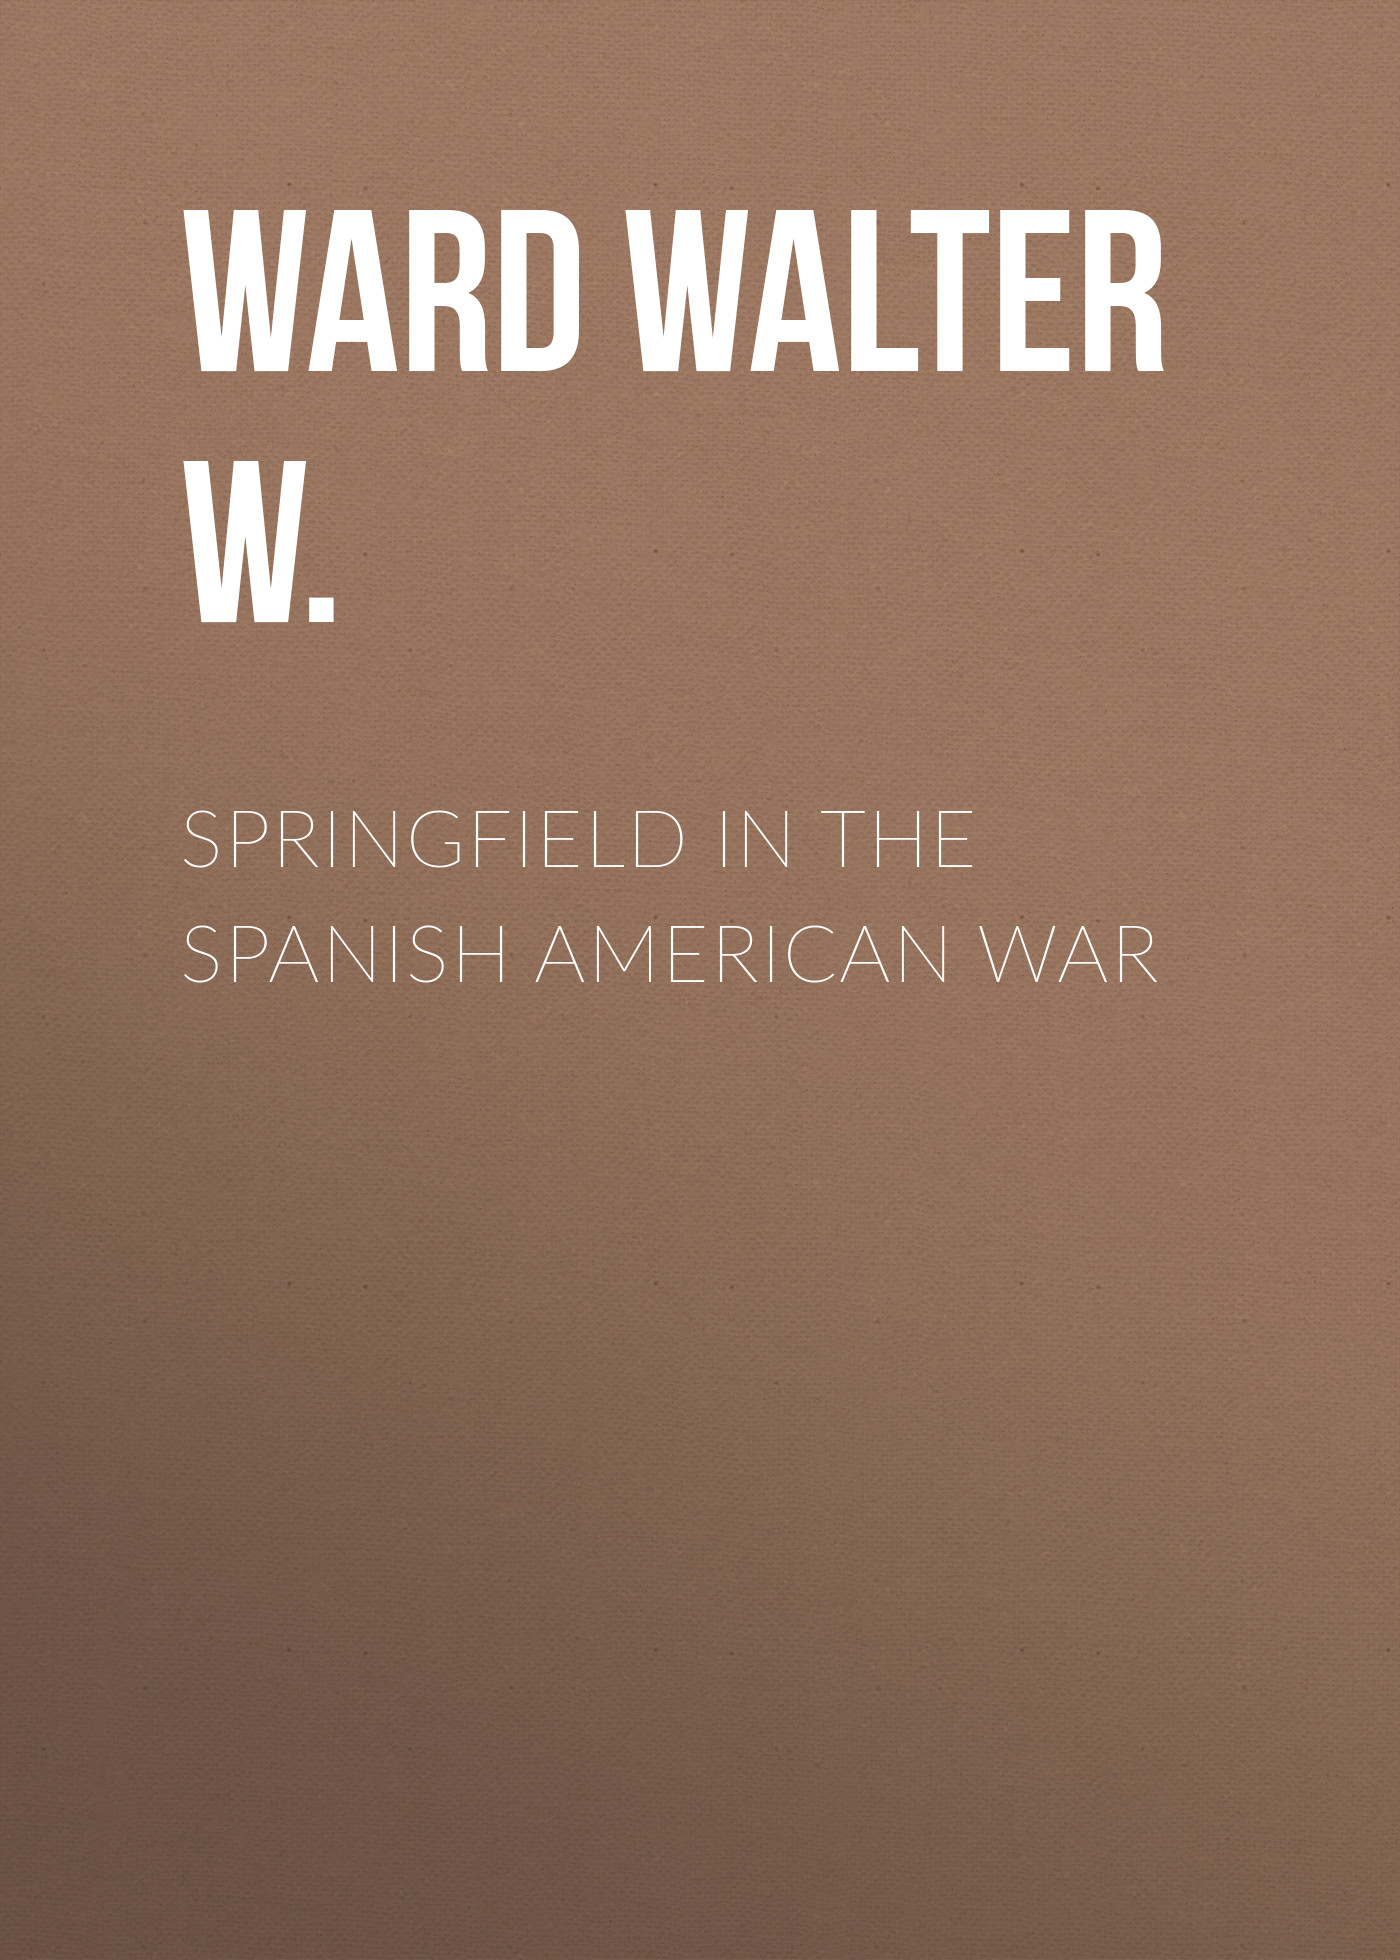 Ward Walter W. Springfield in the Spanish American War 10pcs lot handmade single page paper greeting card birthday party invitation with blank inner page gift card